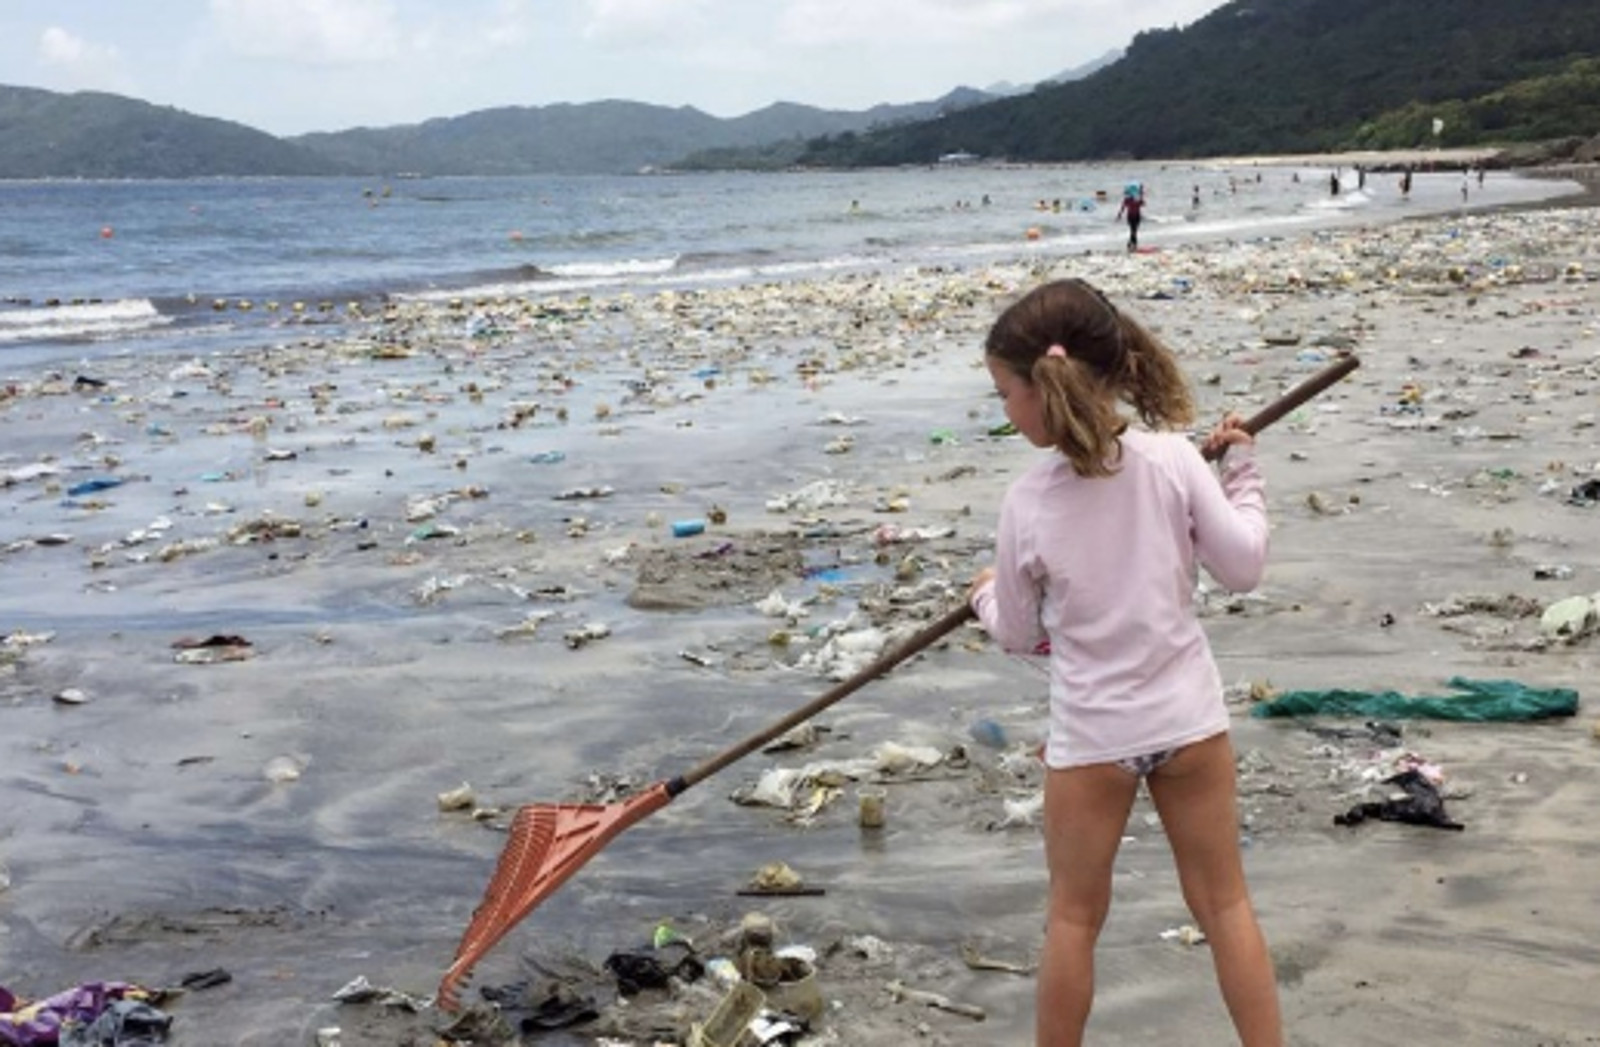 Photo of Little Girl Raking Up Plastic Trash on the Beach Foretells a Sad Future if We Don't Make a Change